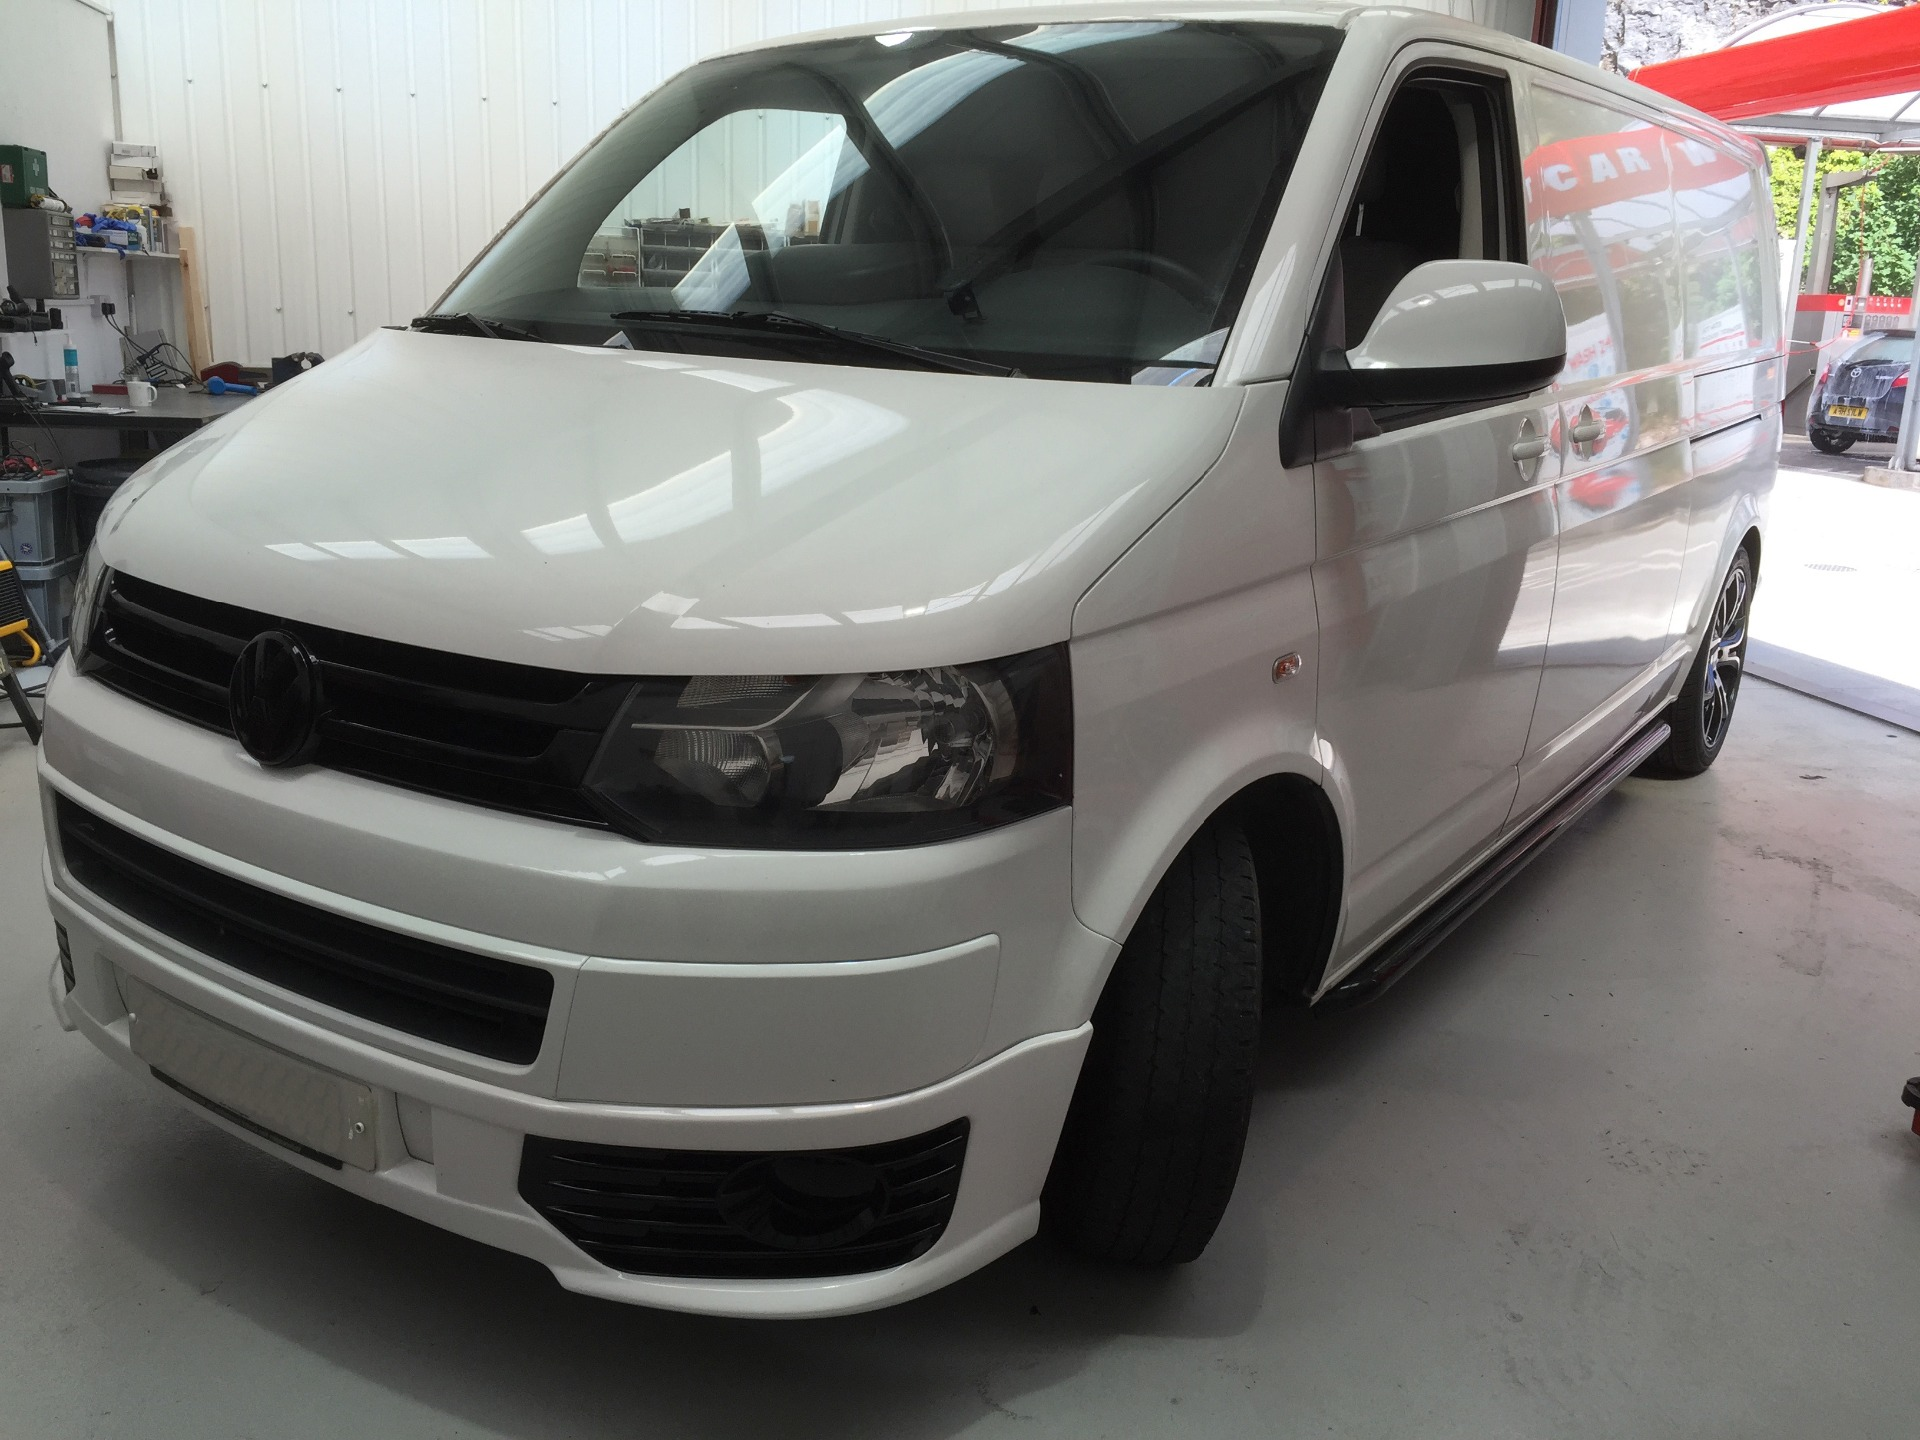 VW-T5 Upgrades in the South West